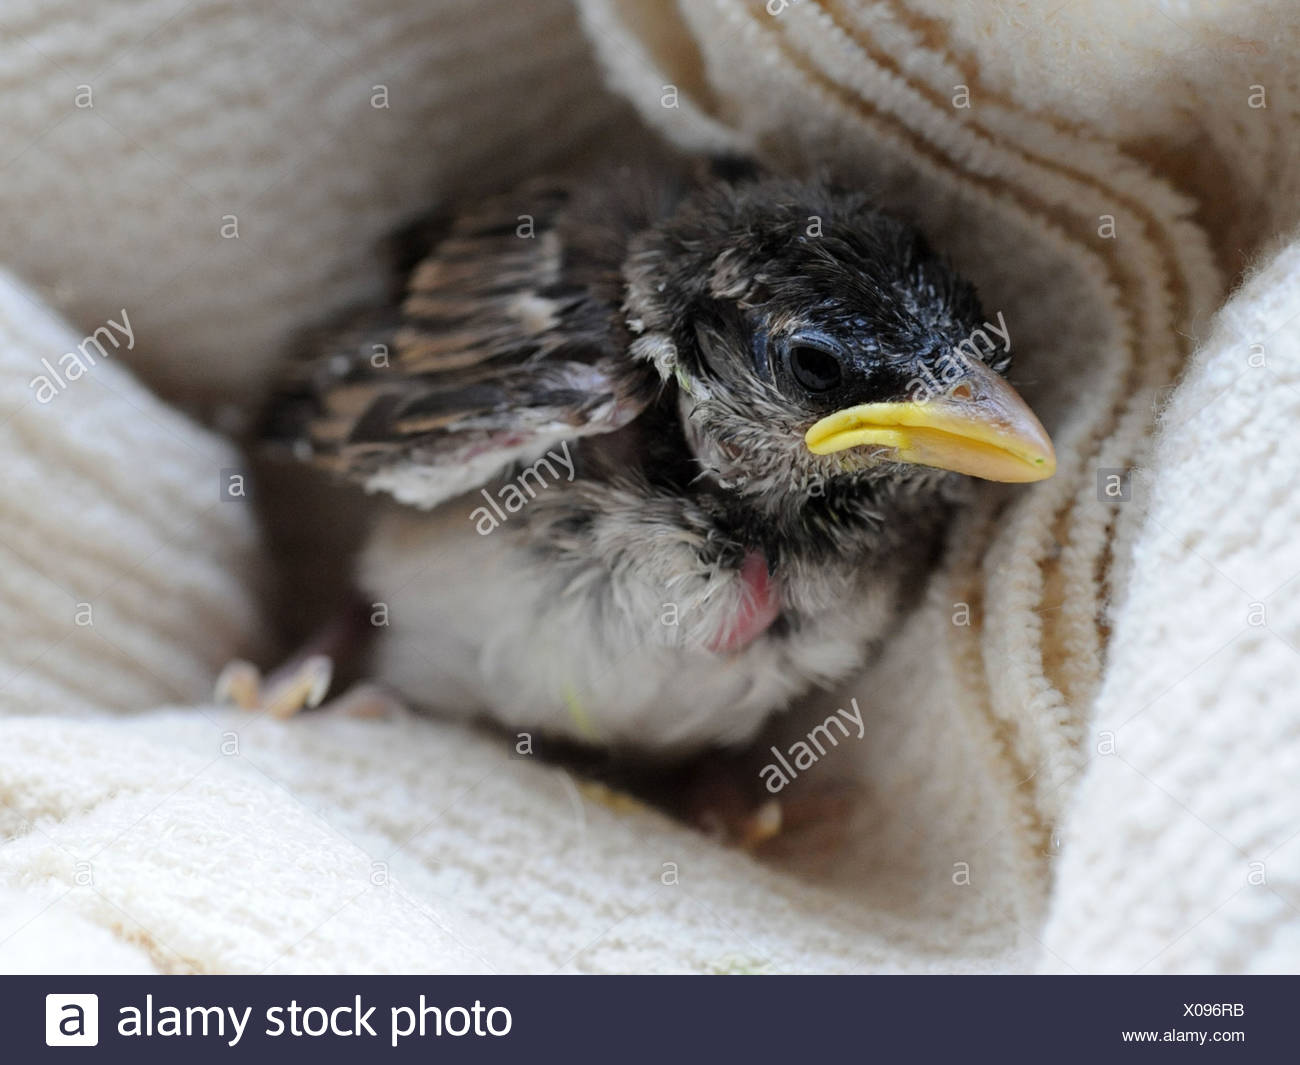 A small nestling, a baby sparrow a few weeks old - Stock Image